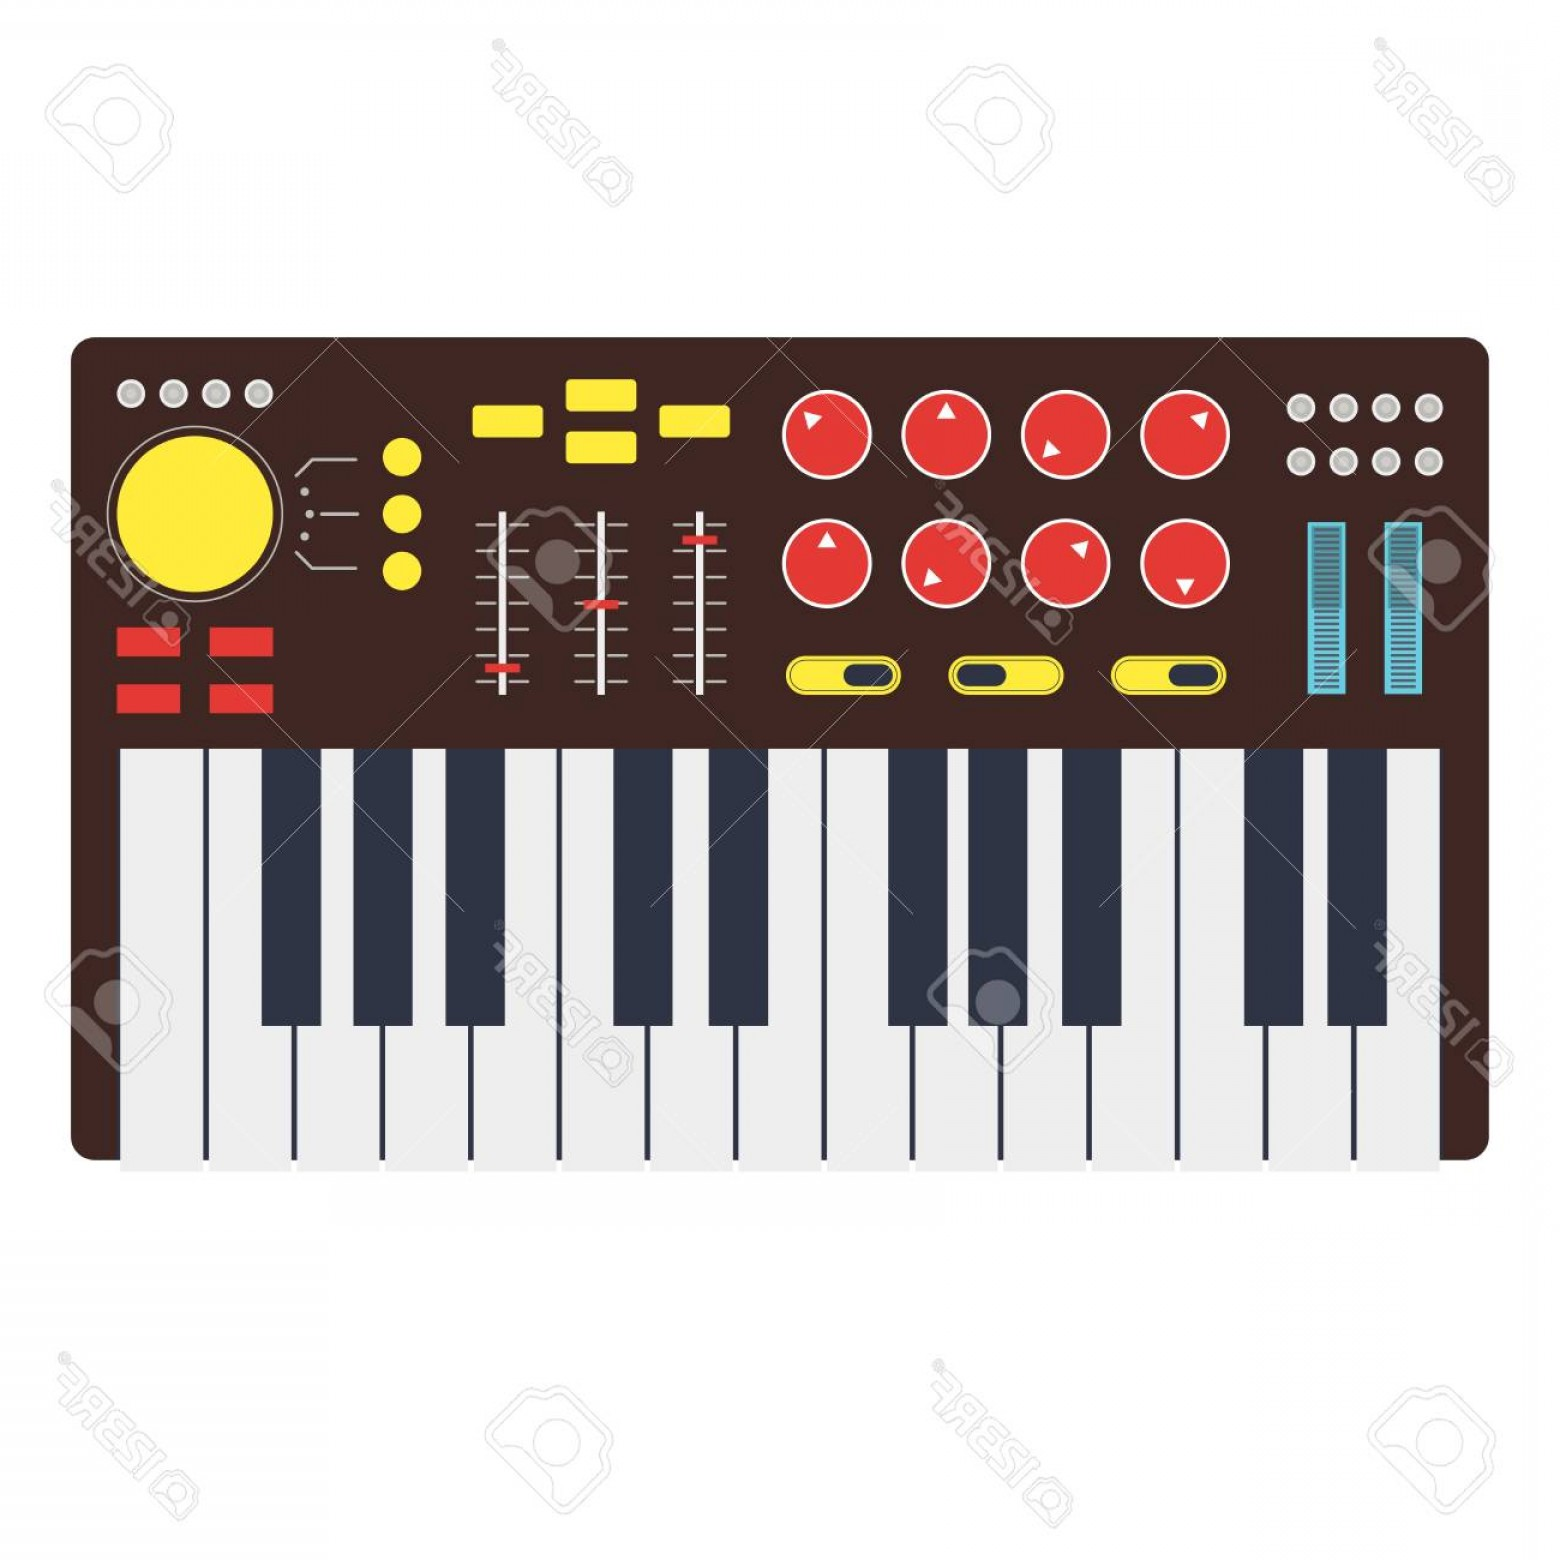 Musical Keyboard Vector: Photostock Vector Cartoon Synth Or Music Keyboard Electronic Piano Synthesizer Flat Design Style Vector Illustration